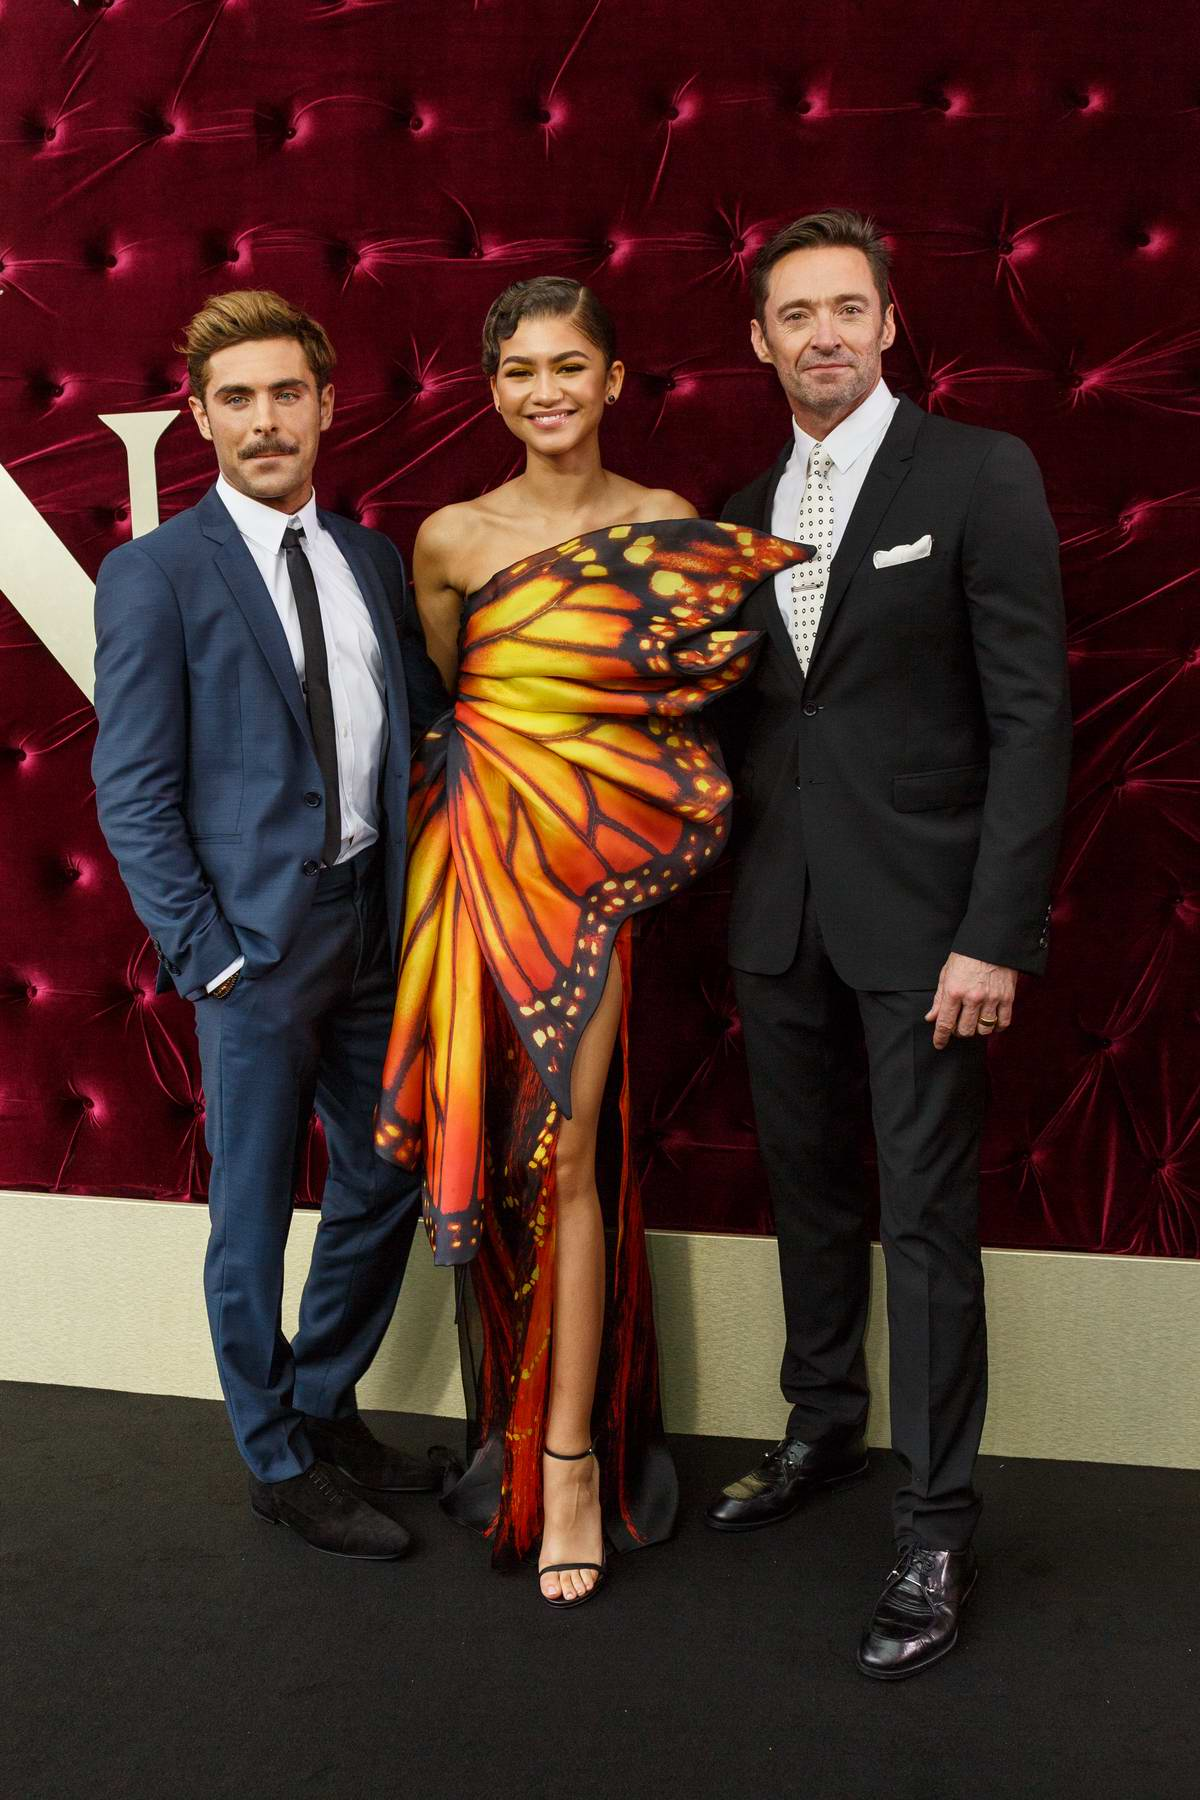 Zendaya Coleman At The Greatest Showman Premiere In